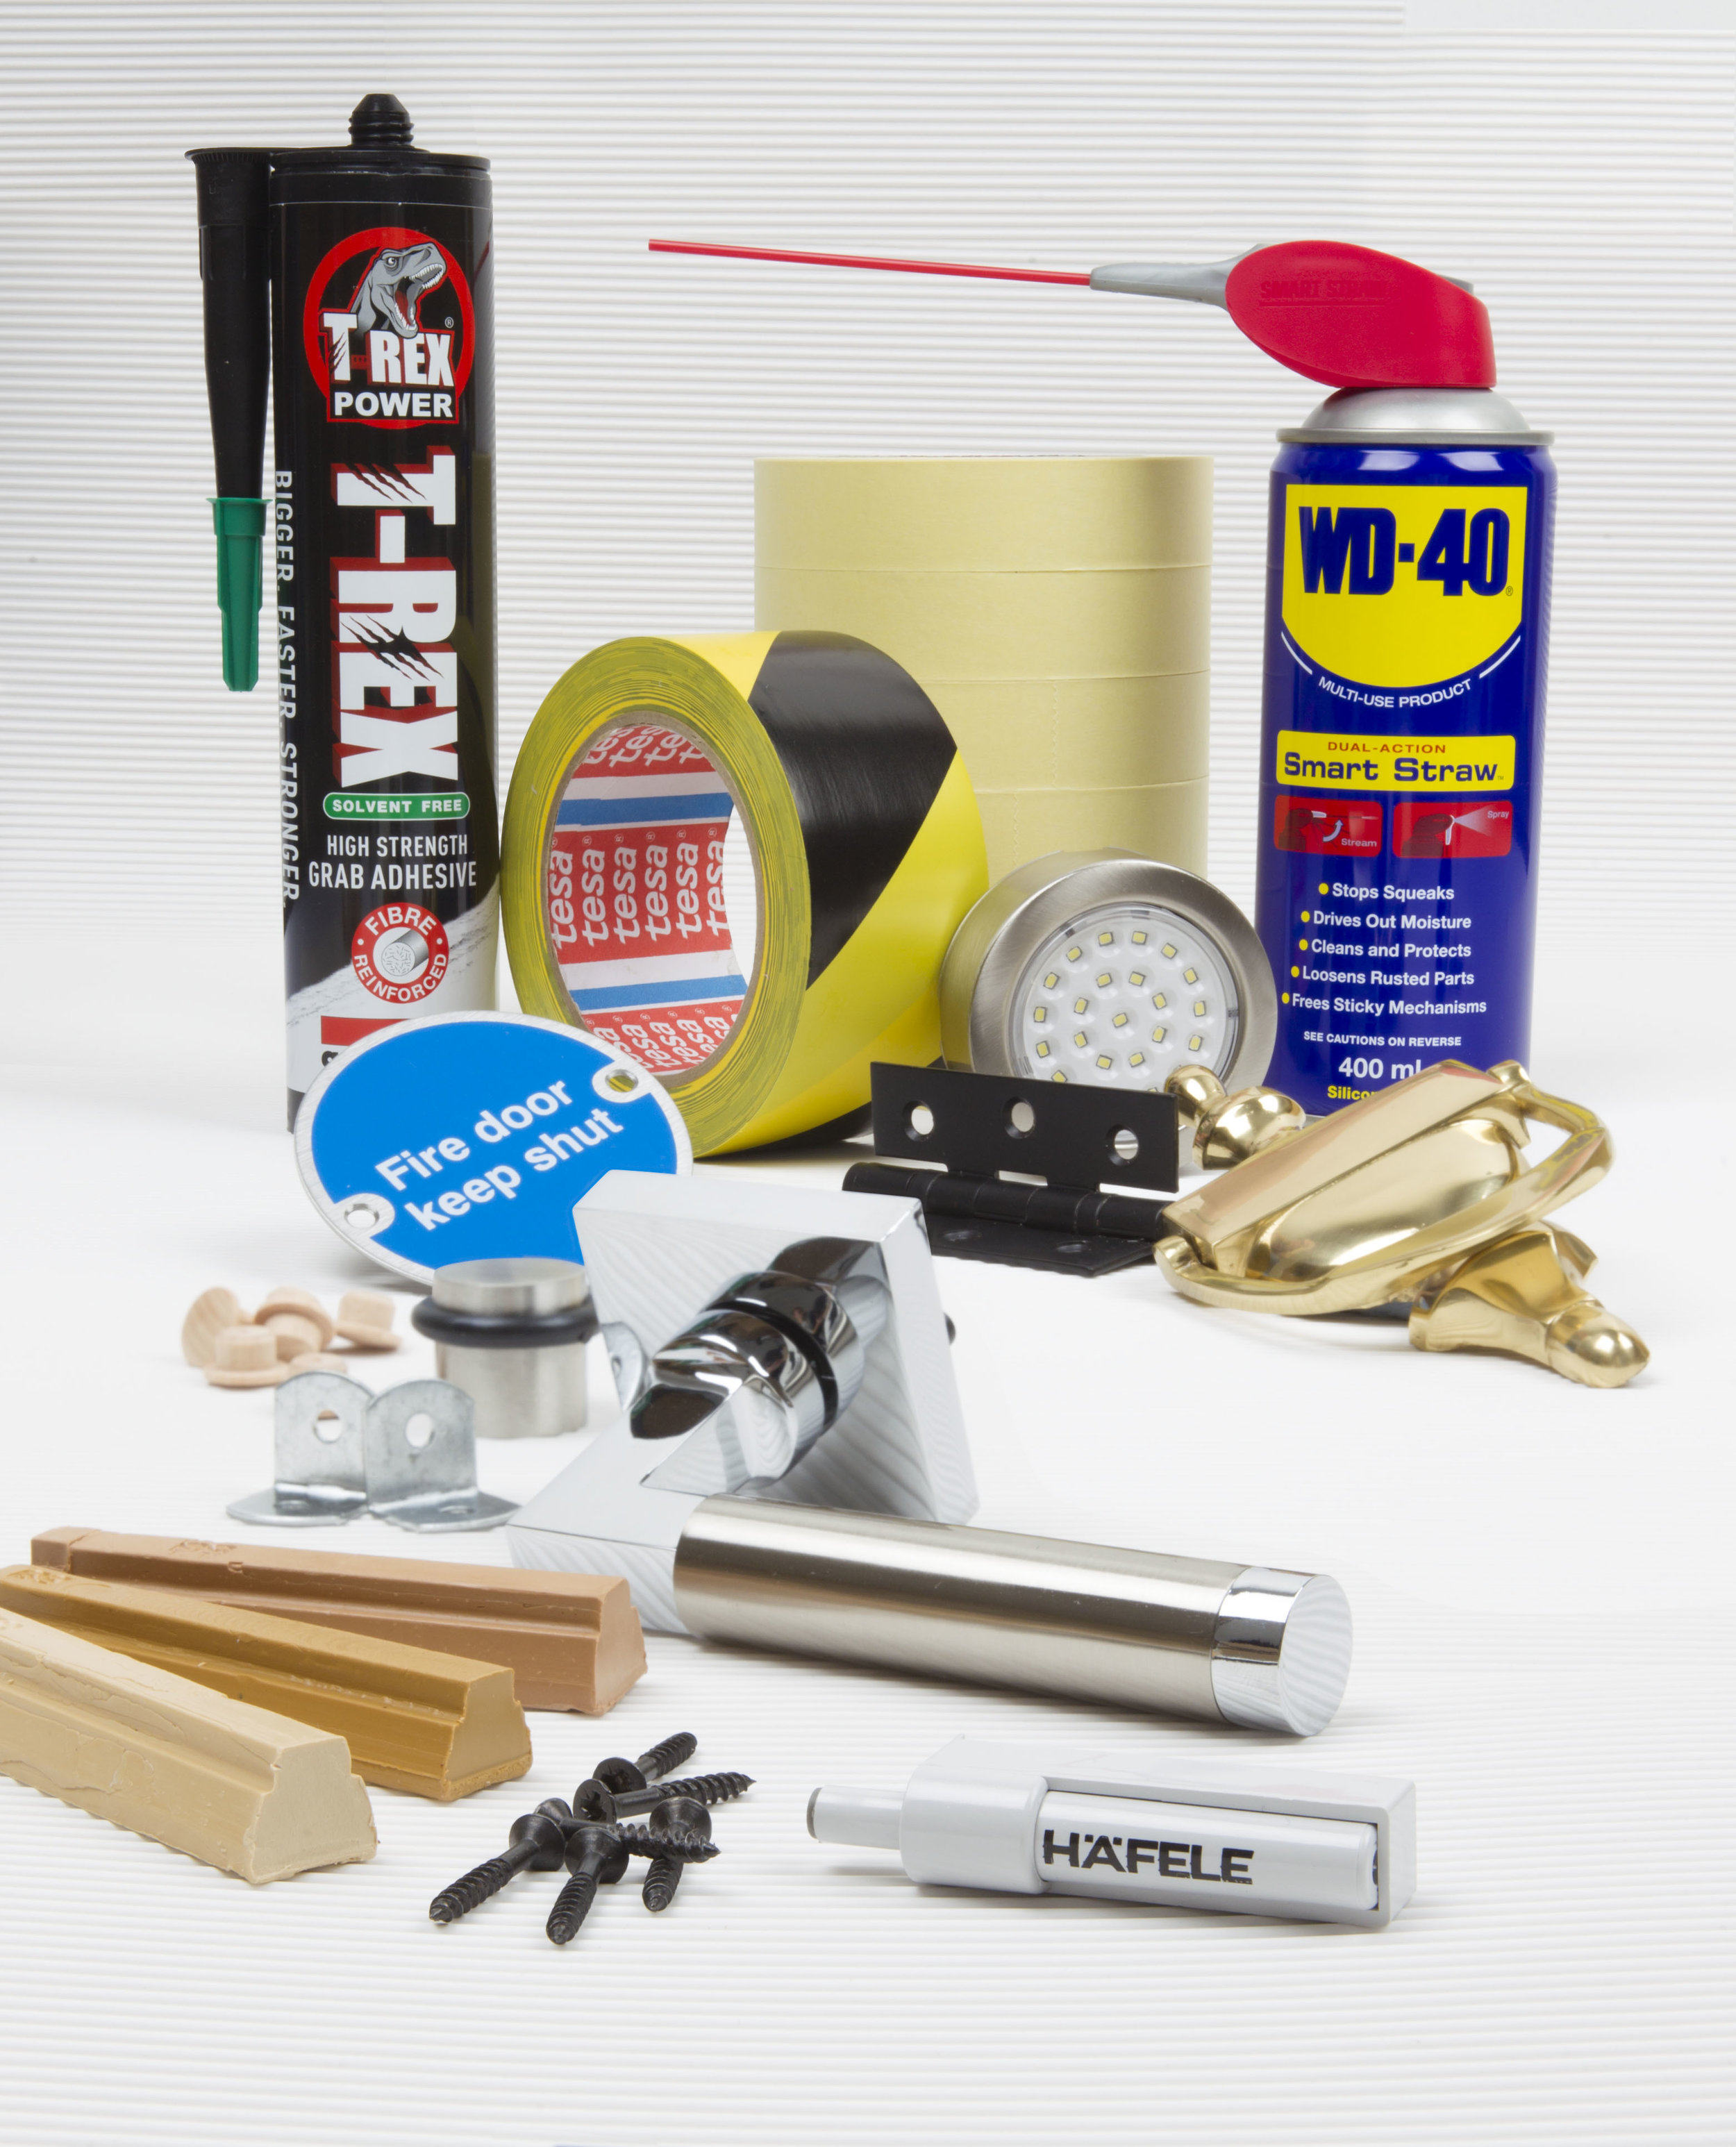 Hafele Tools and Consumables